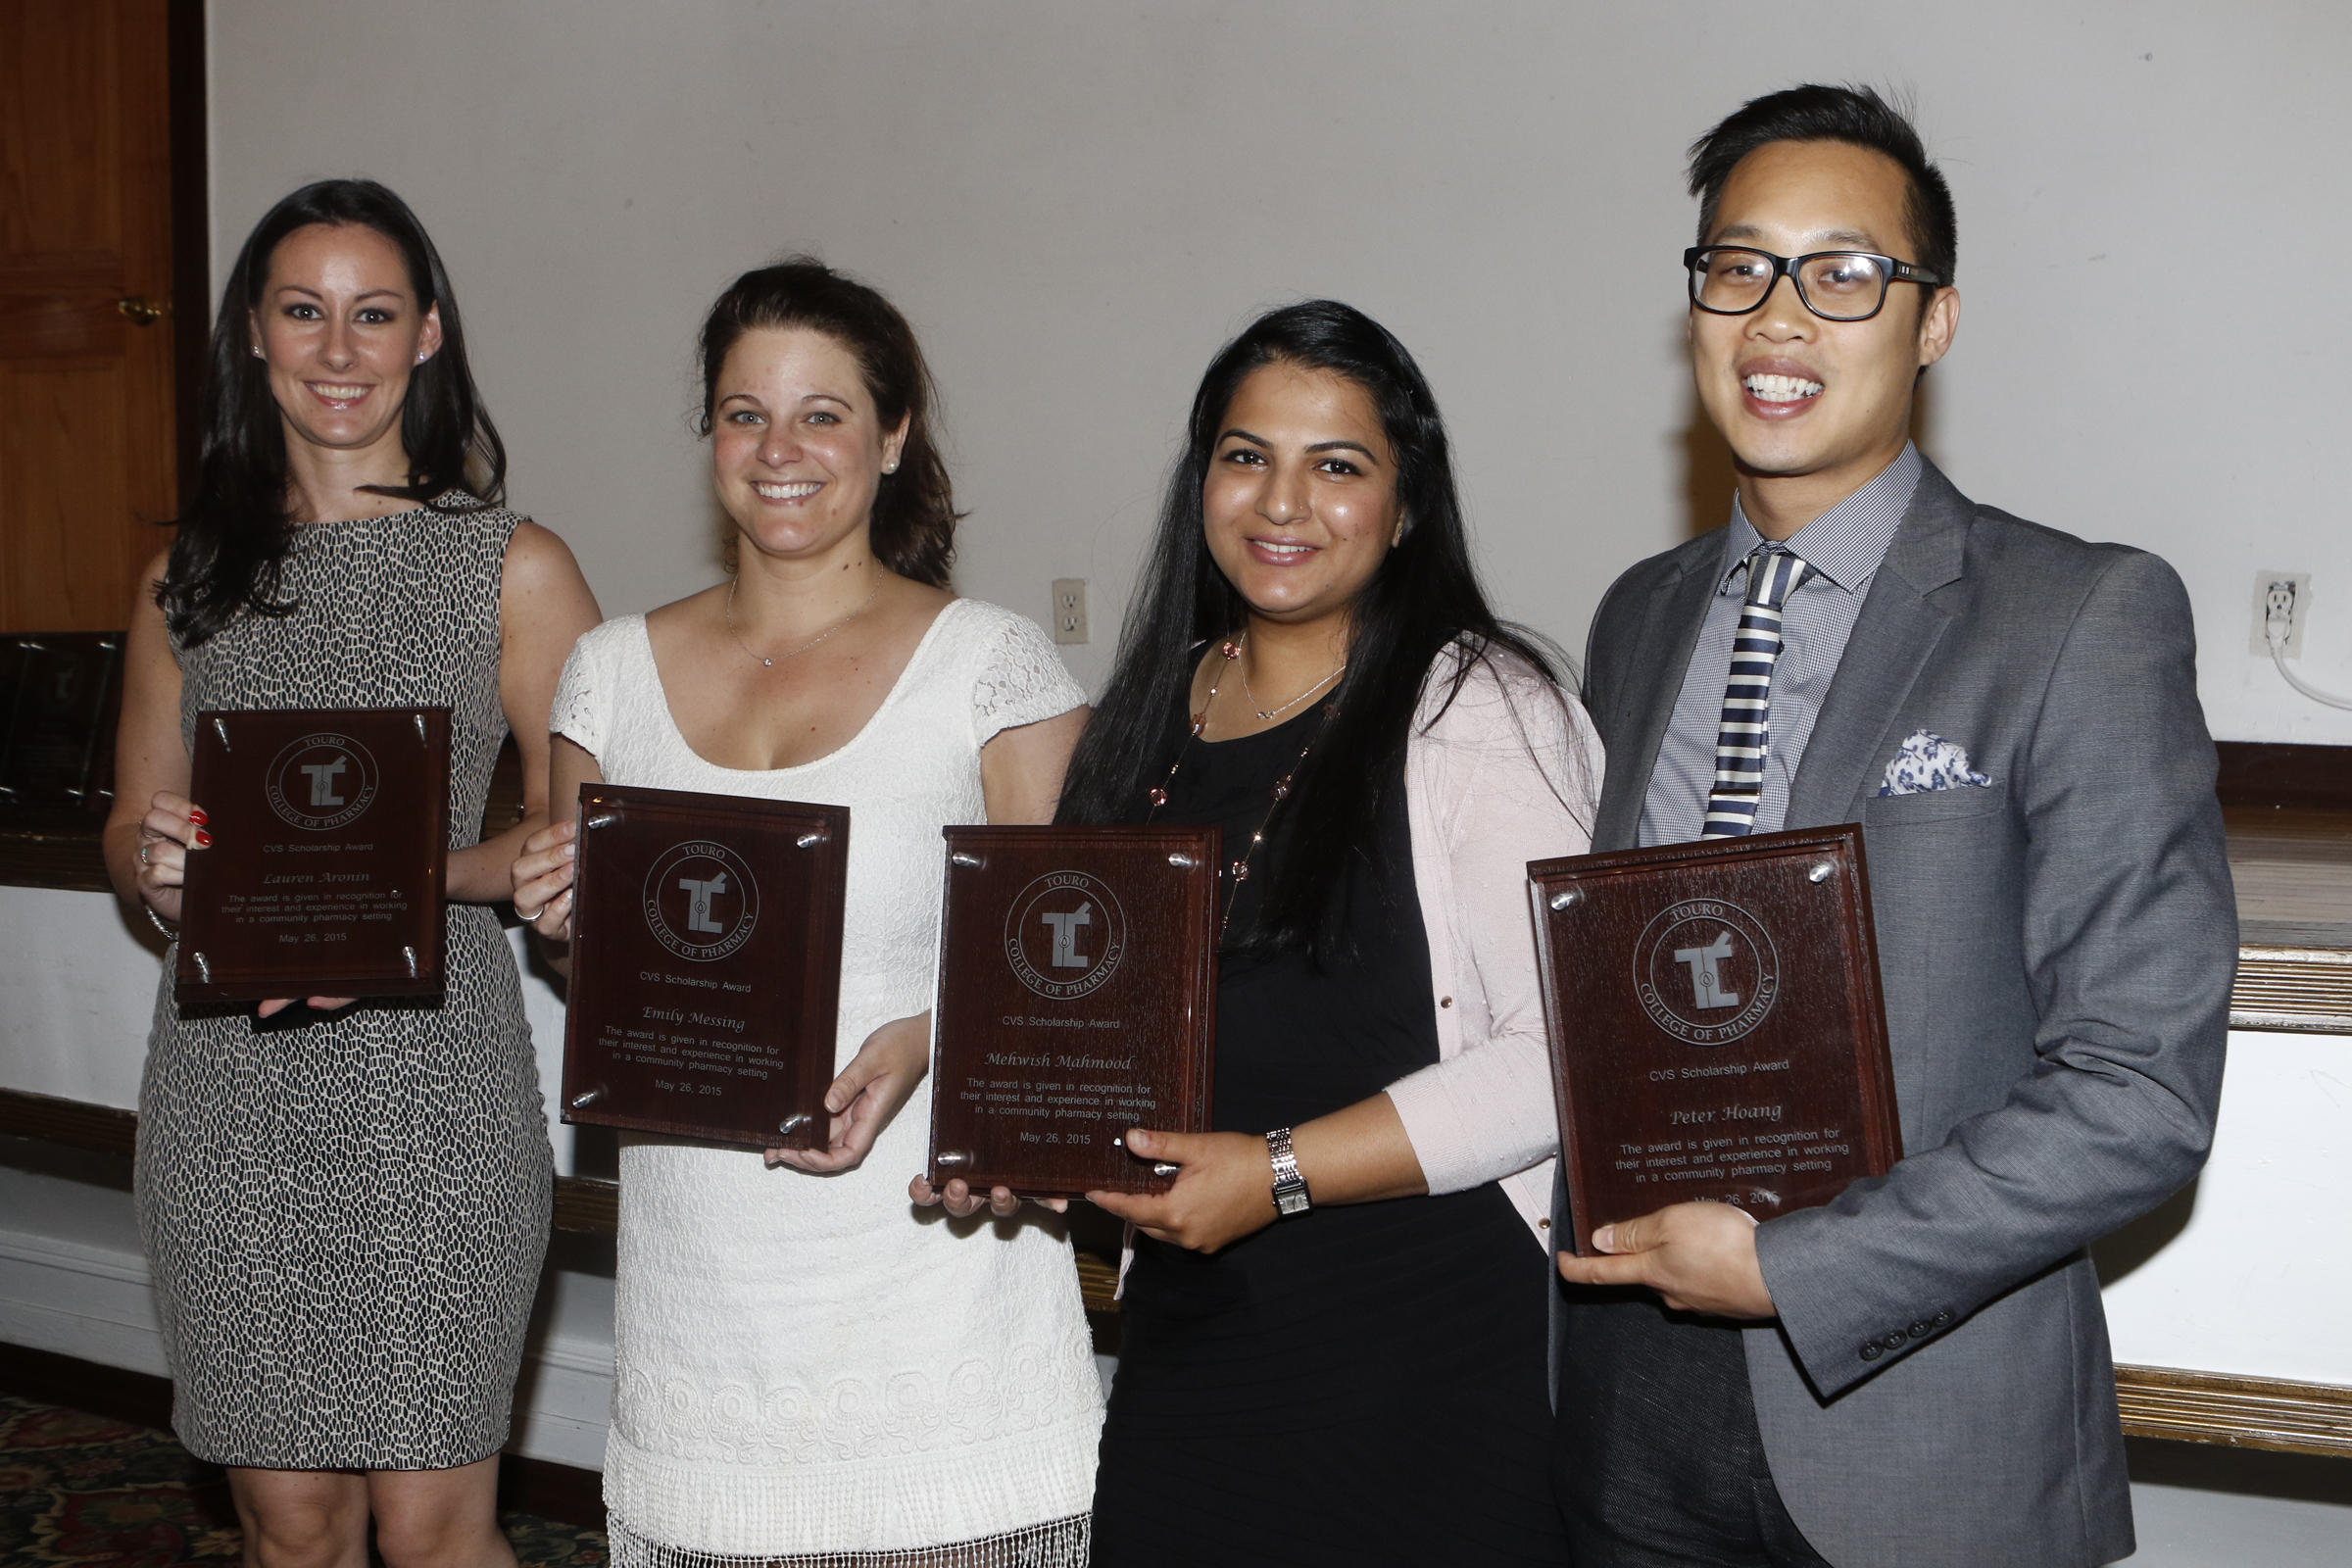 Frpm L-R: Lauren Aronin, Emily Messing, Mehwish Mahmood and Peter Hoang pose with their CVS Scholarship Awards.